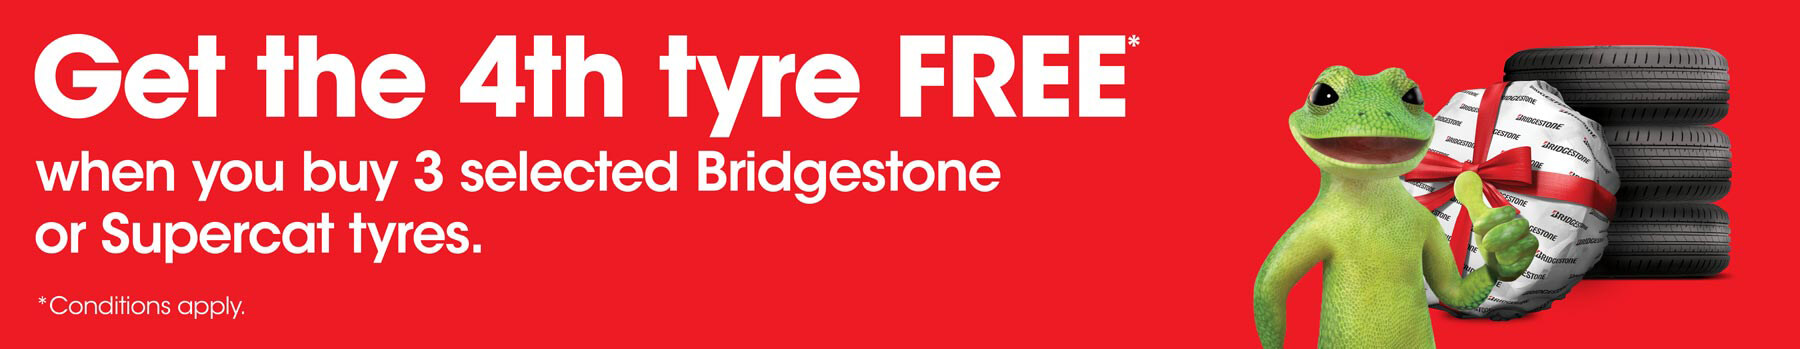 Get the 4th tyre FREE when you buy 3 selected Bridgestone or Supercat tyres